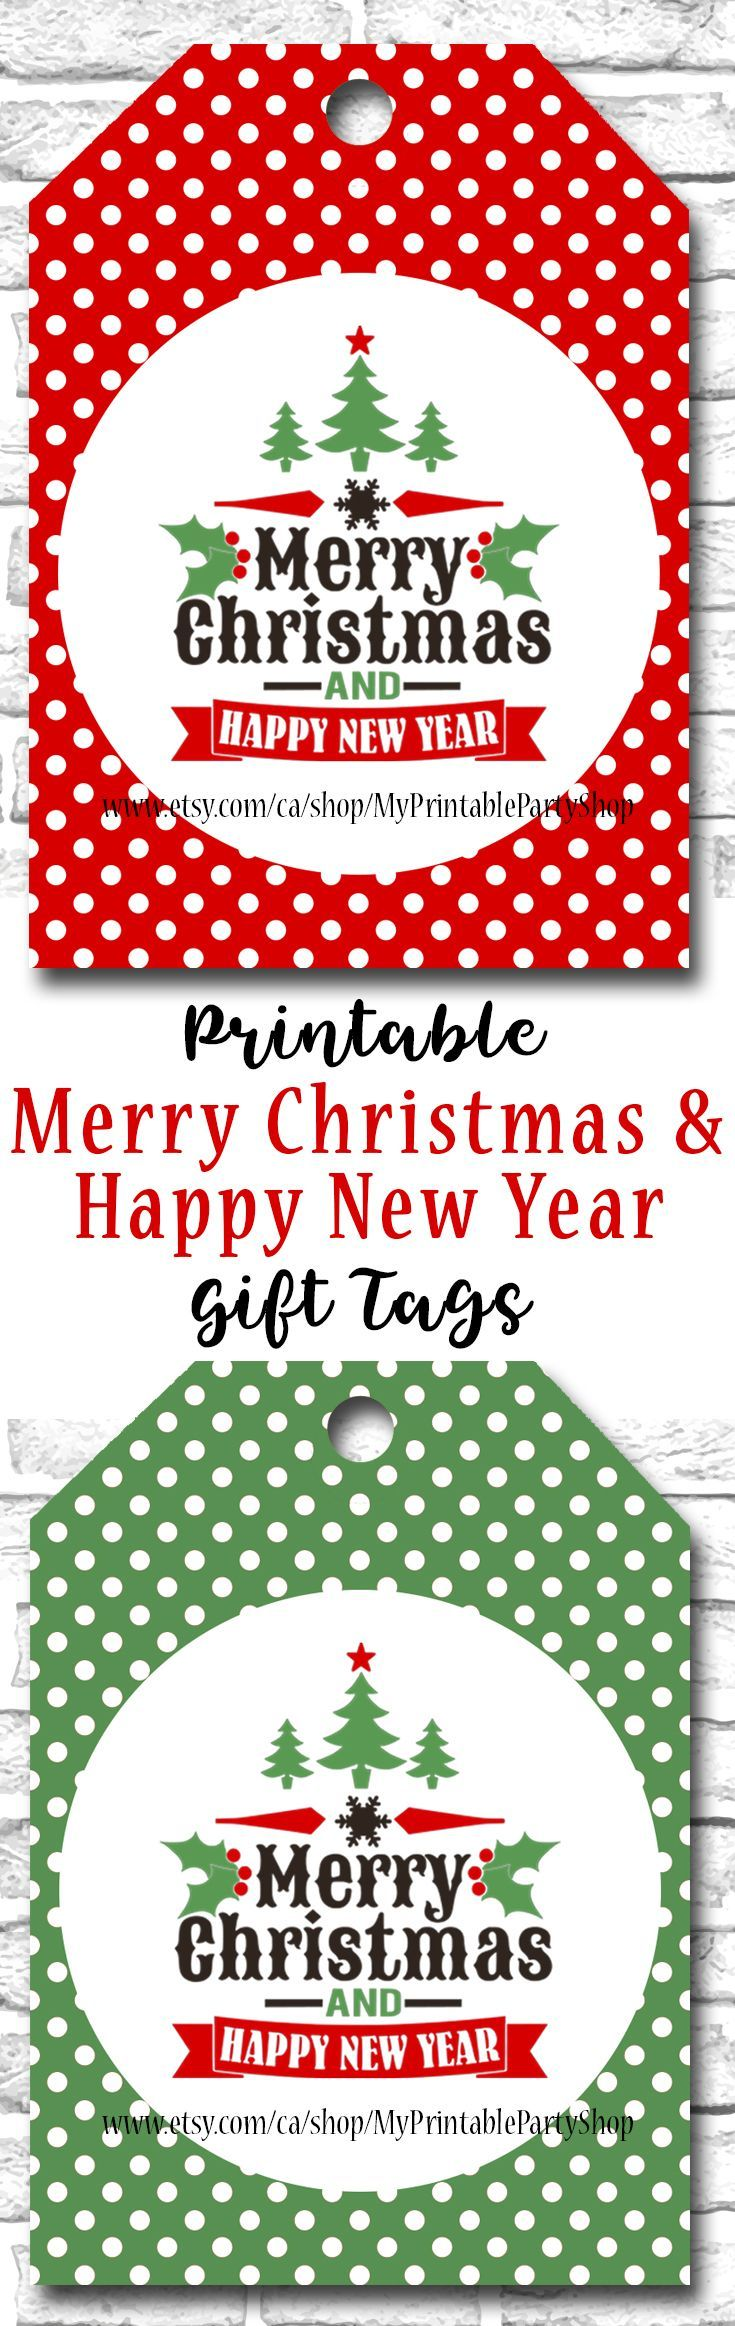 PRINTABLE Holiday Gift Tags, Christmas Gift Tags, Merry Christmas And Happy New Year Gift Tags, Red Green Polka Dot, INSTANT DOWNLOAD https://www.etsy.com/ca/listing/494251255/printable-holiday-gift-tags-christmas